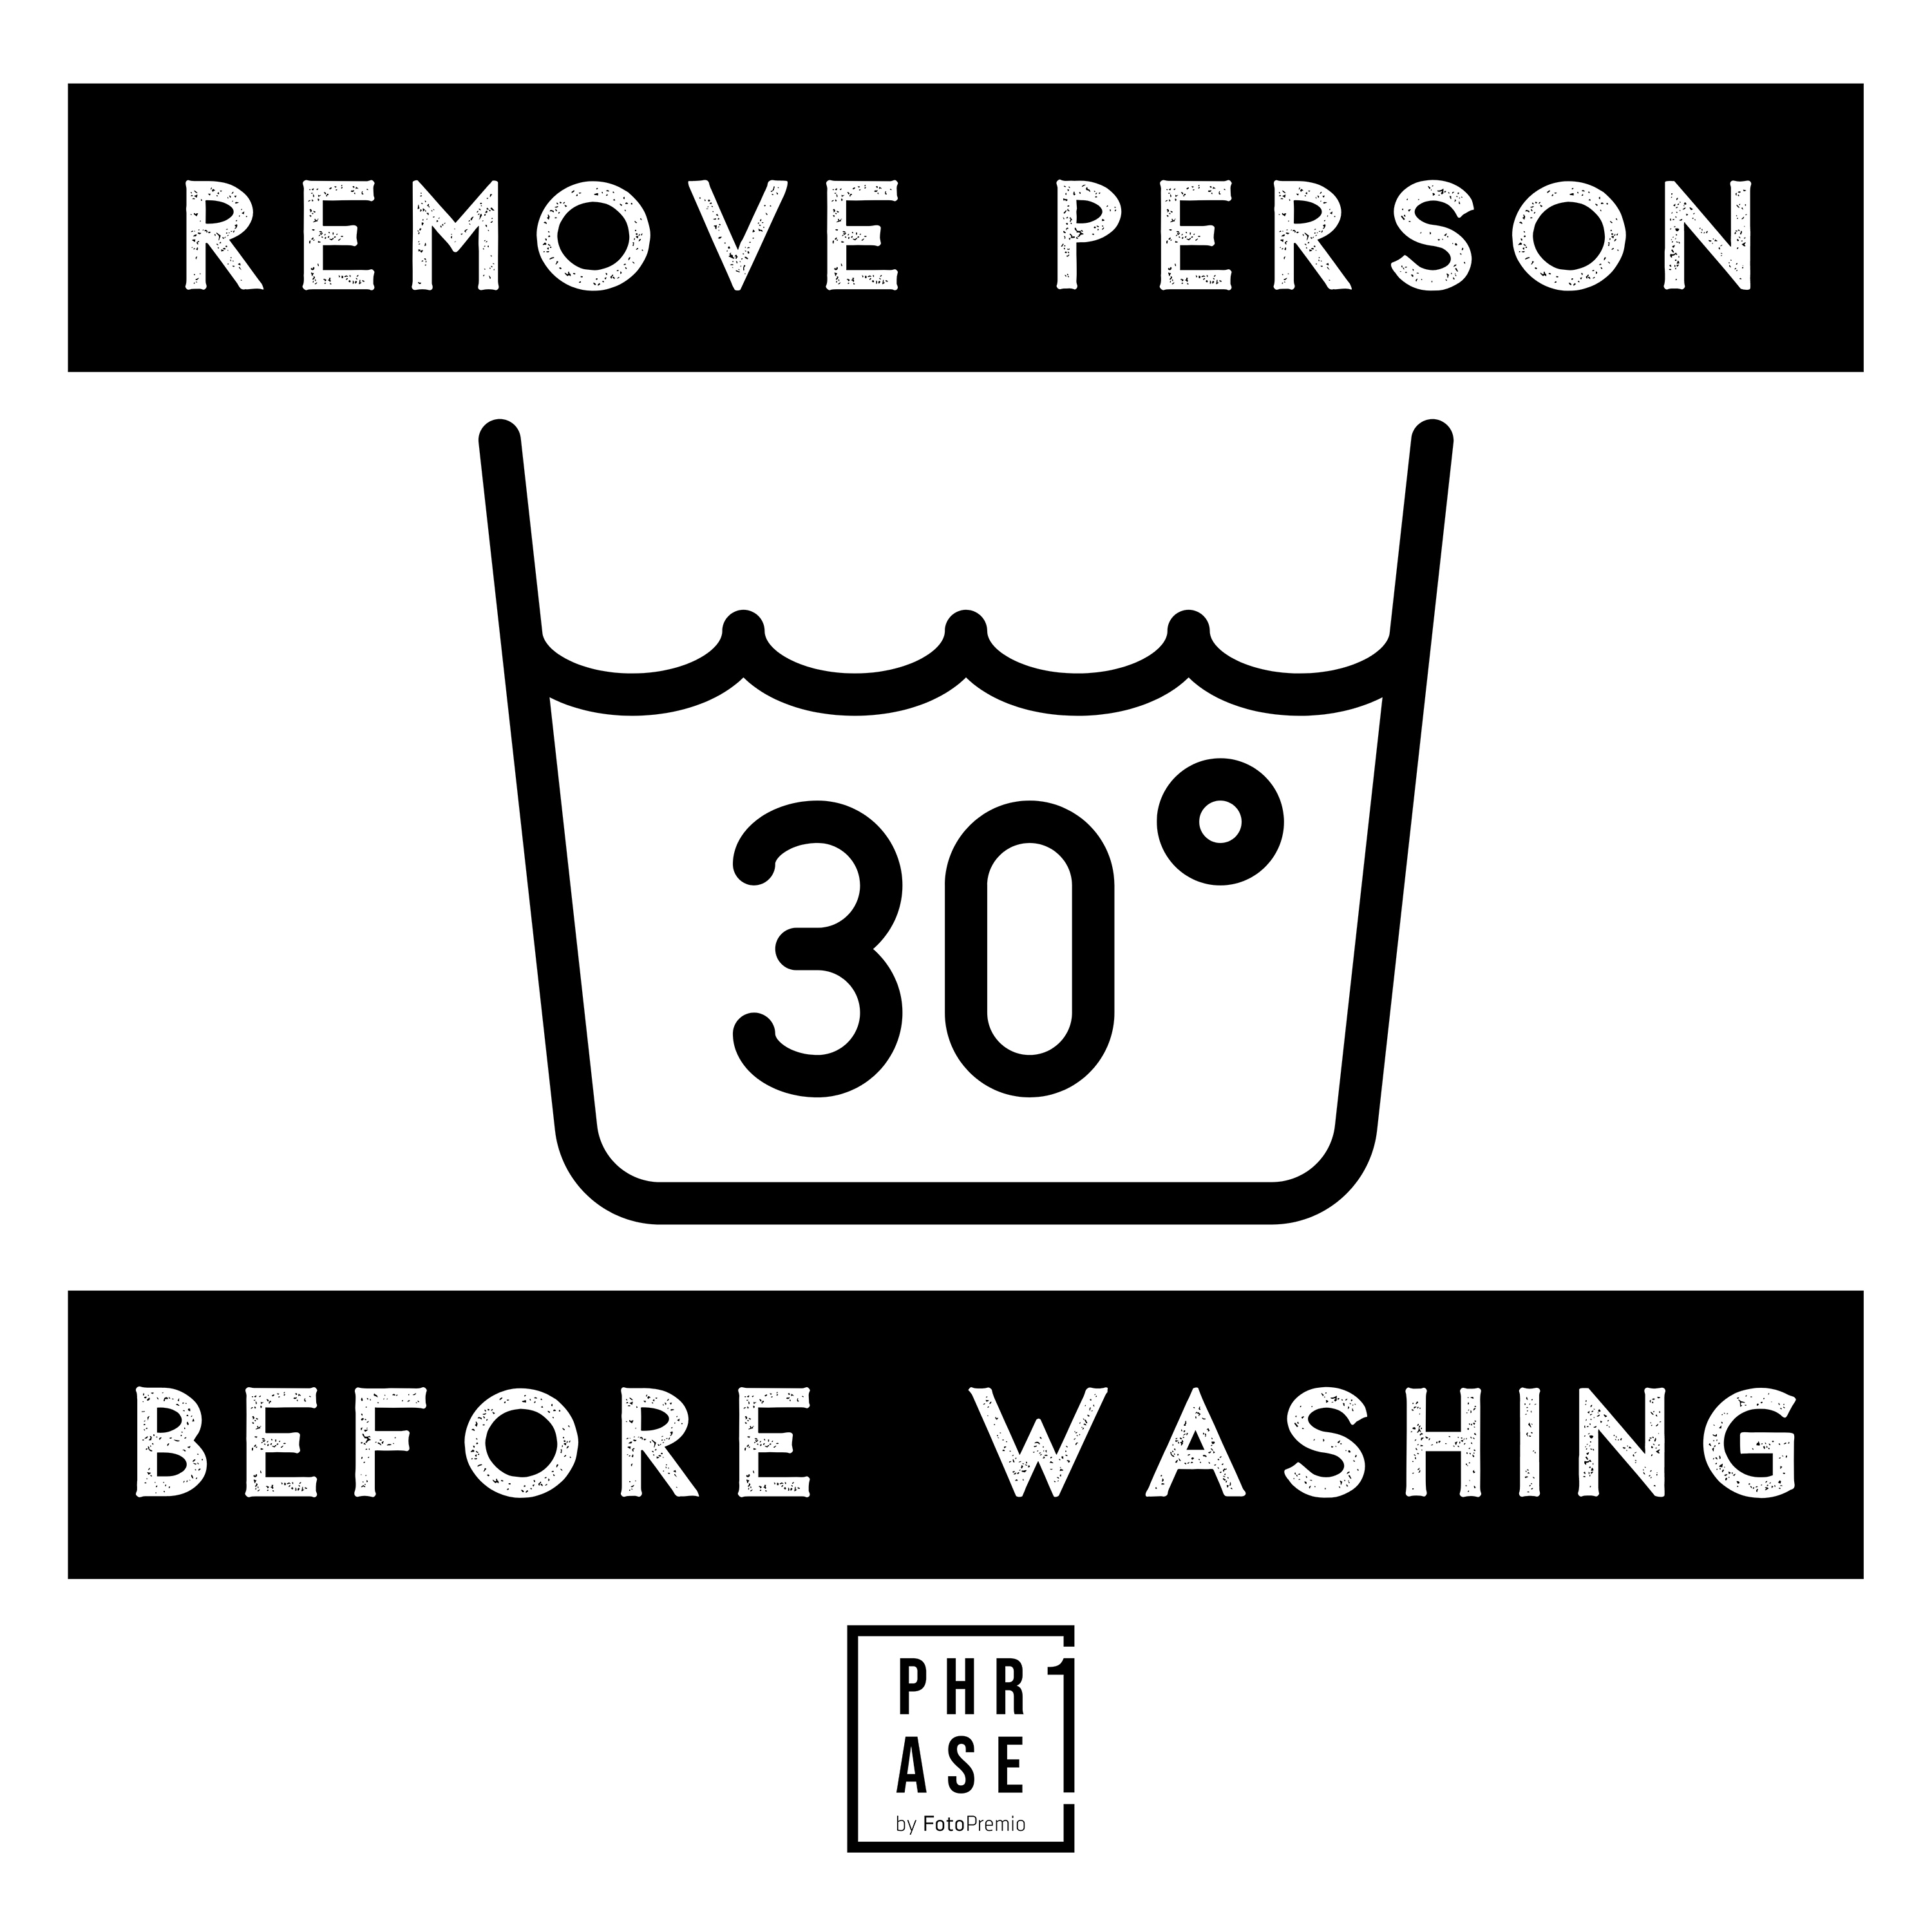 Remove Person before washing